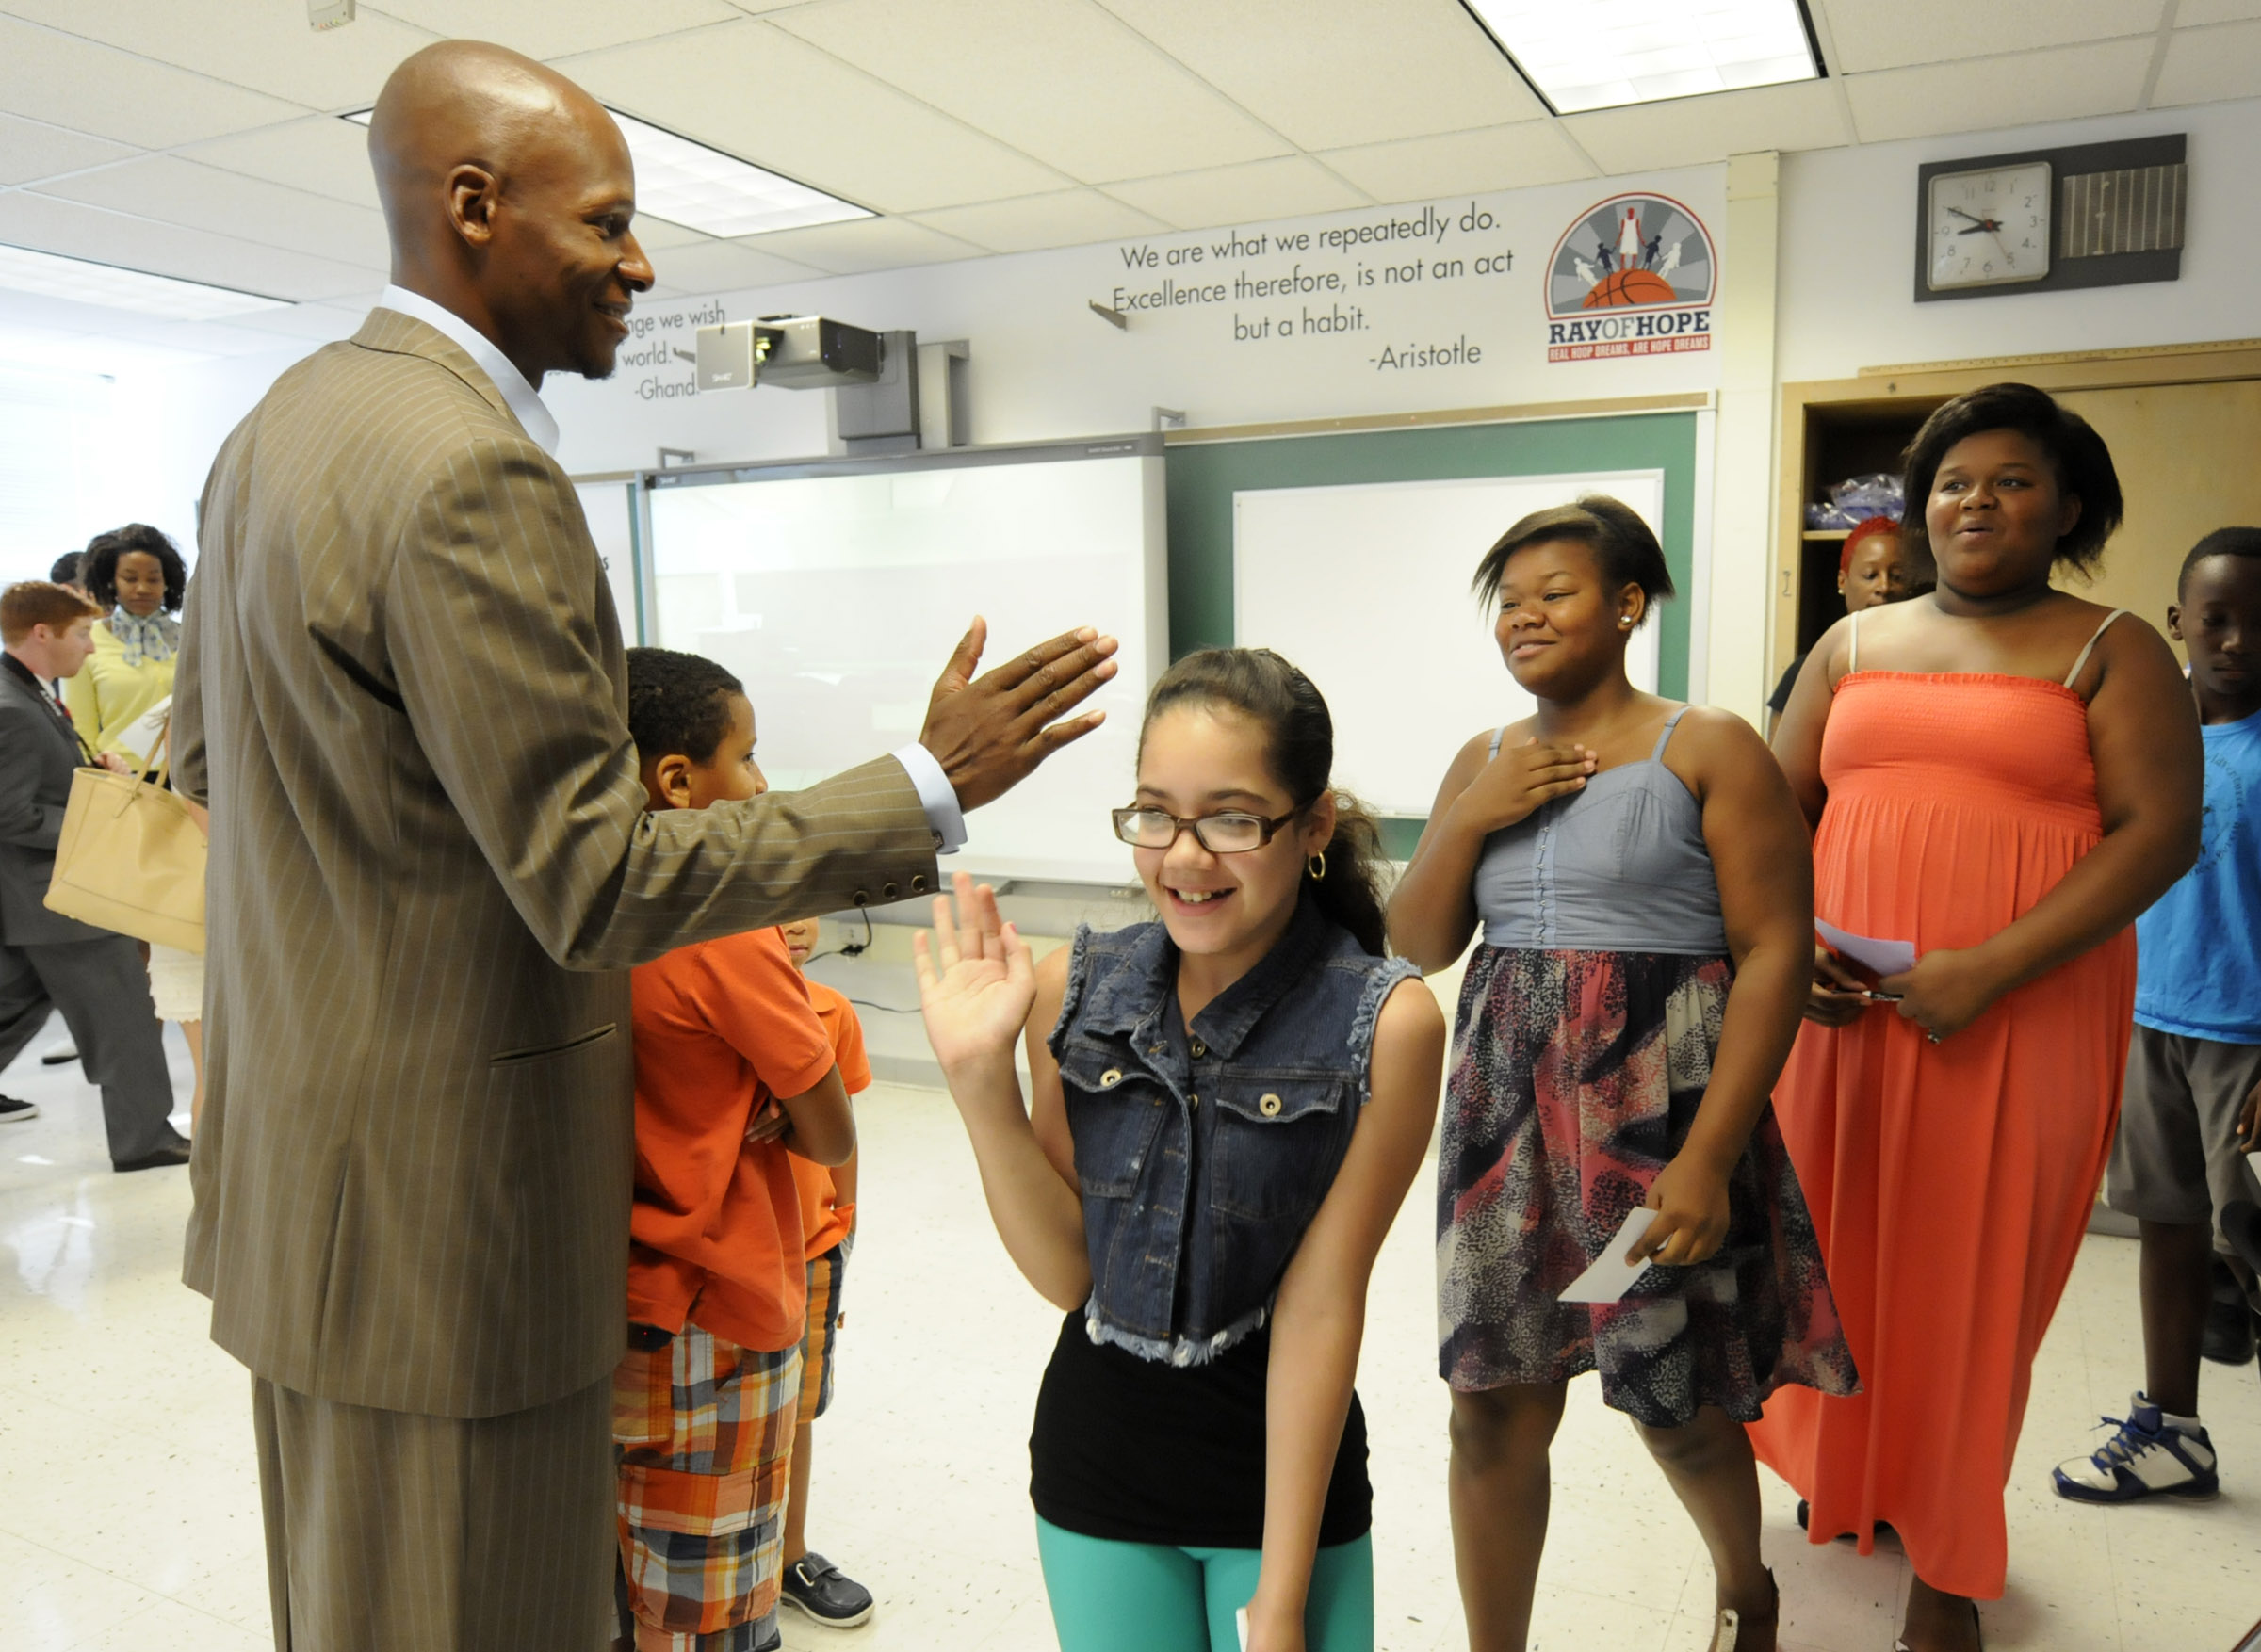 Basketball star Ray Allen offers high fives to students filing into the Wish School's new computer lab funded by Allen's foundation Ray of Hope. The students are from left, Jadalin DeJesus, 11, and twin sister Shania Coleman and Amya Coleman.